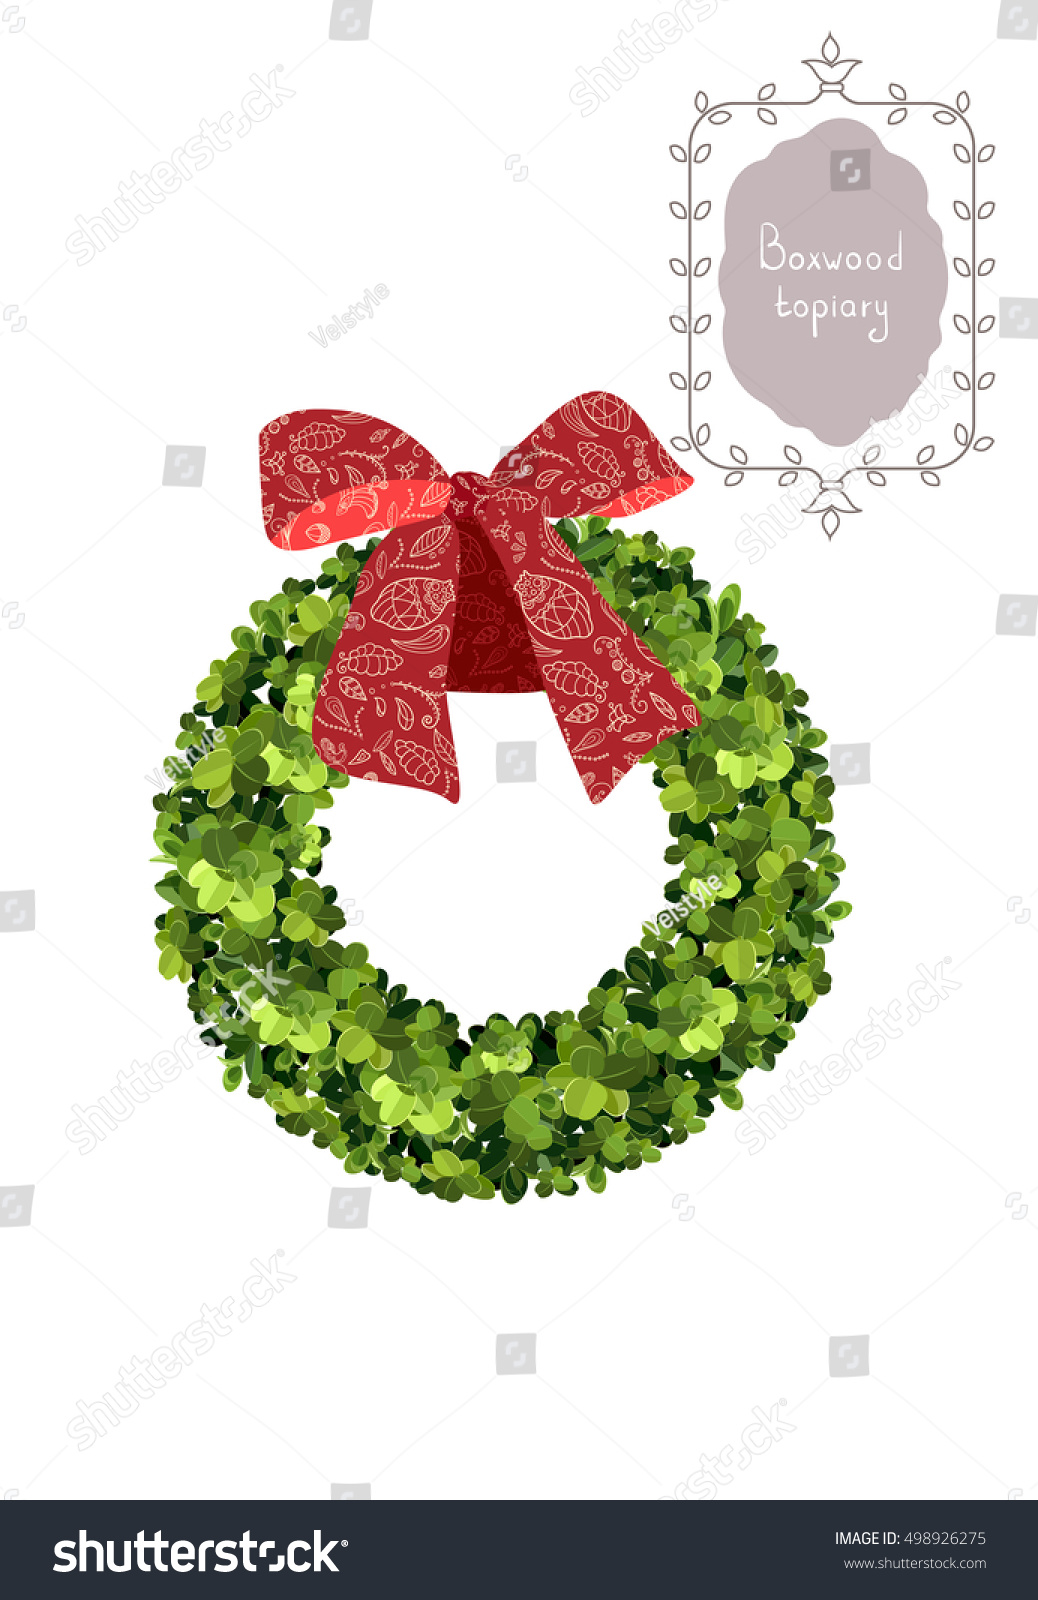 Christmas Wreath Red Bow Boxwood Topiary Stock Vector Royalty Free 498926275